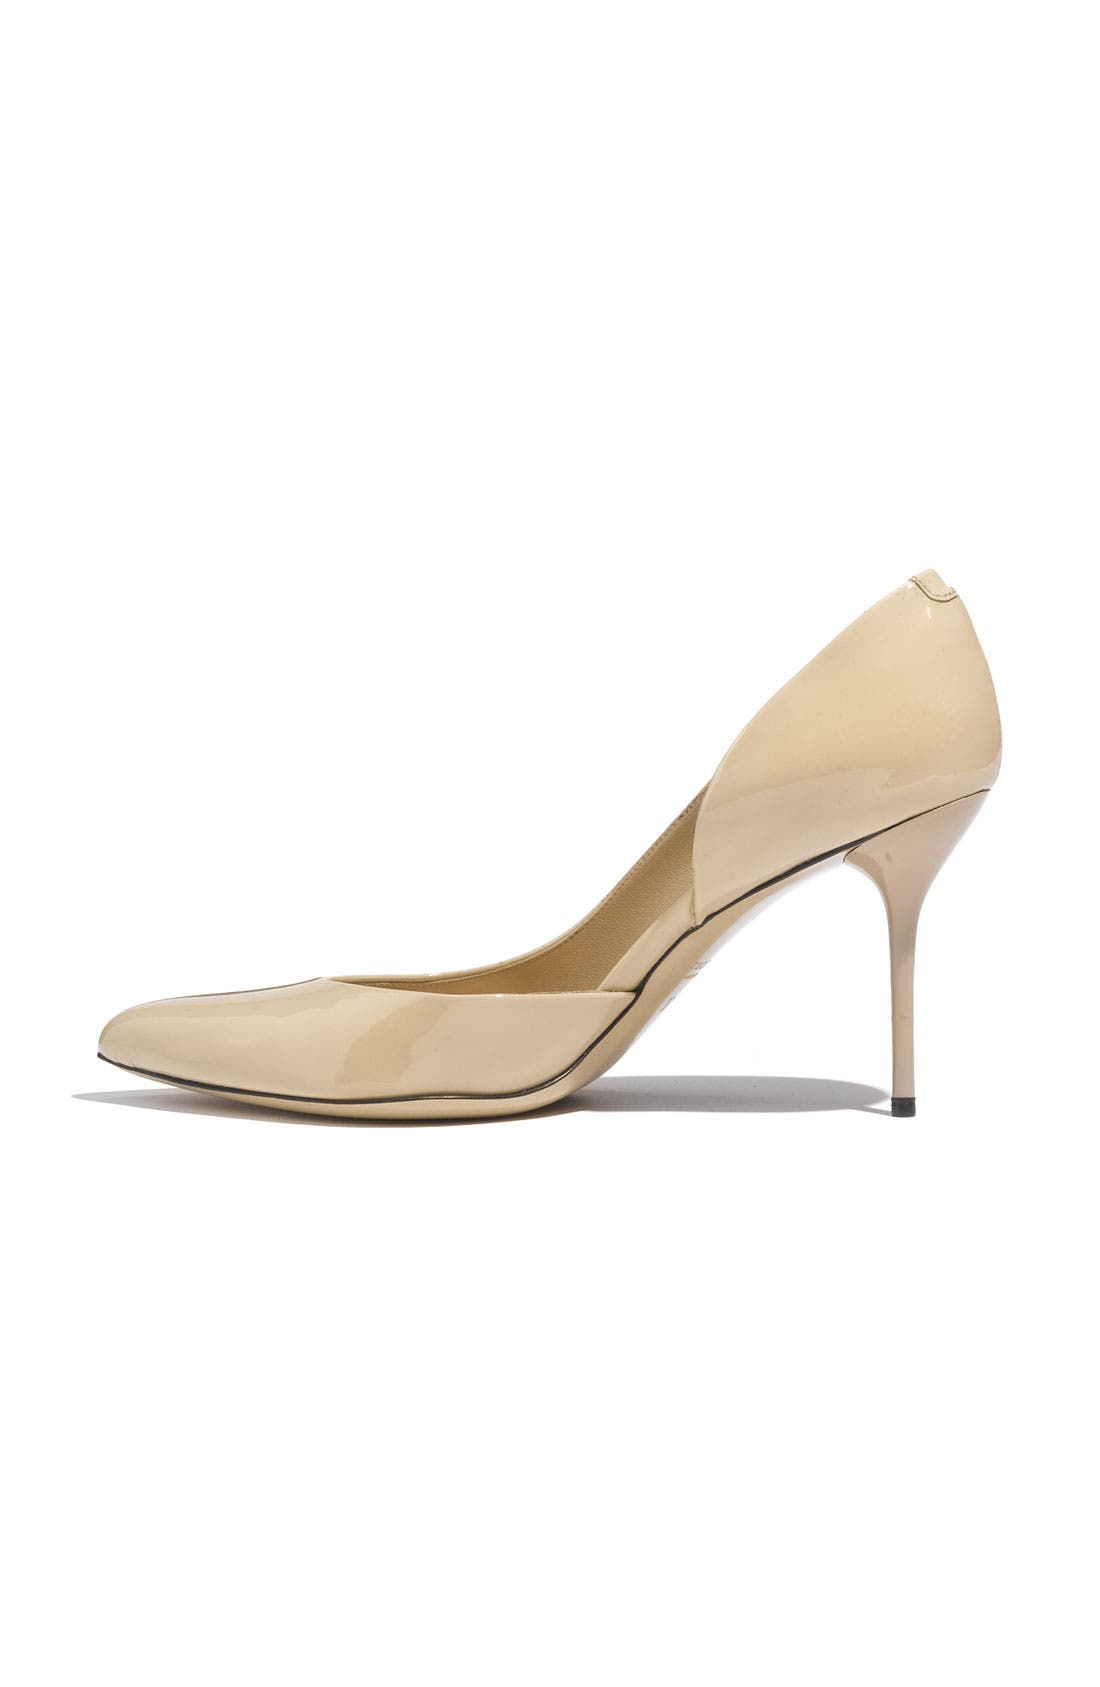 'Noah' d'Orsay Pump,                             Alternate thumbnail 2, color,                             Light Powder